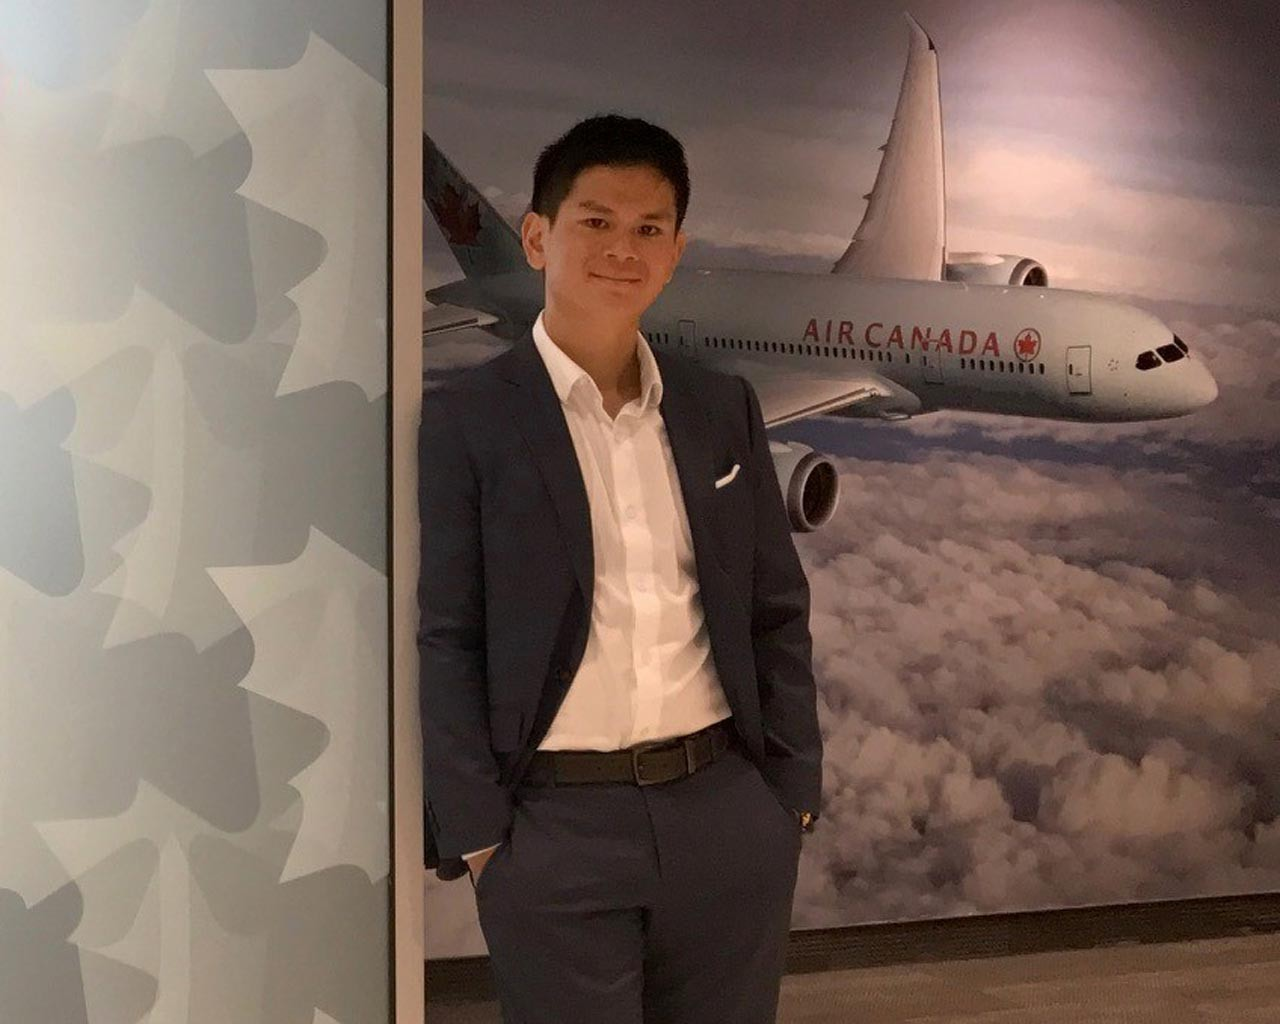 Flying high with Air Canada